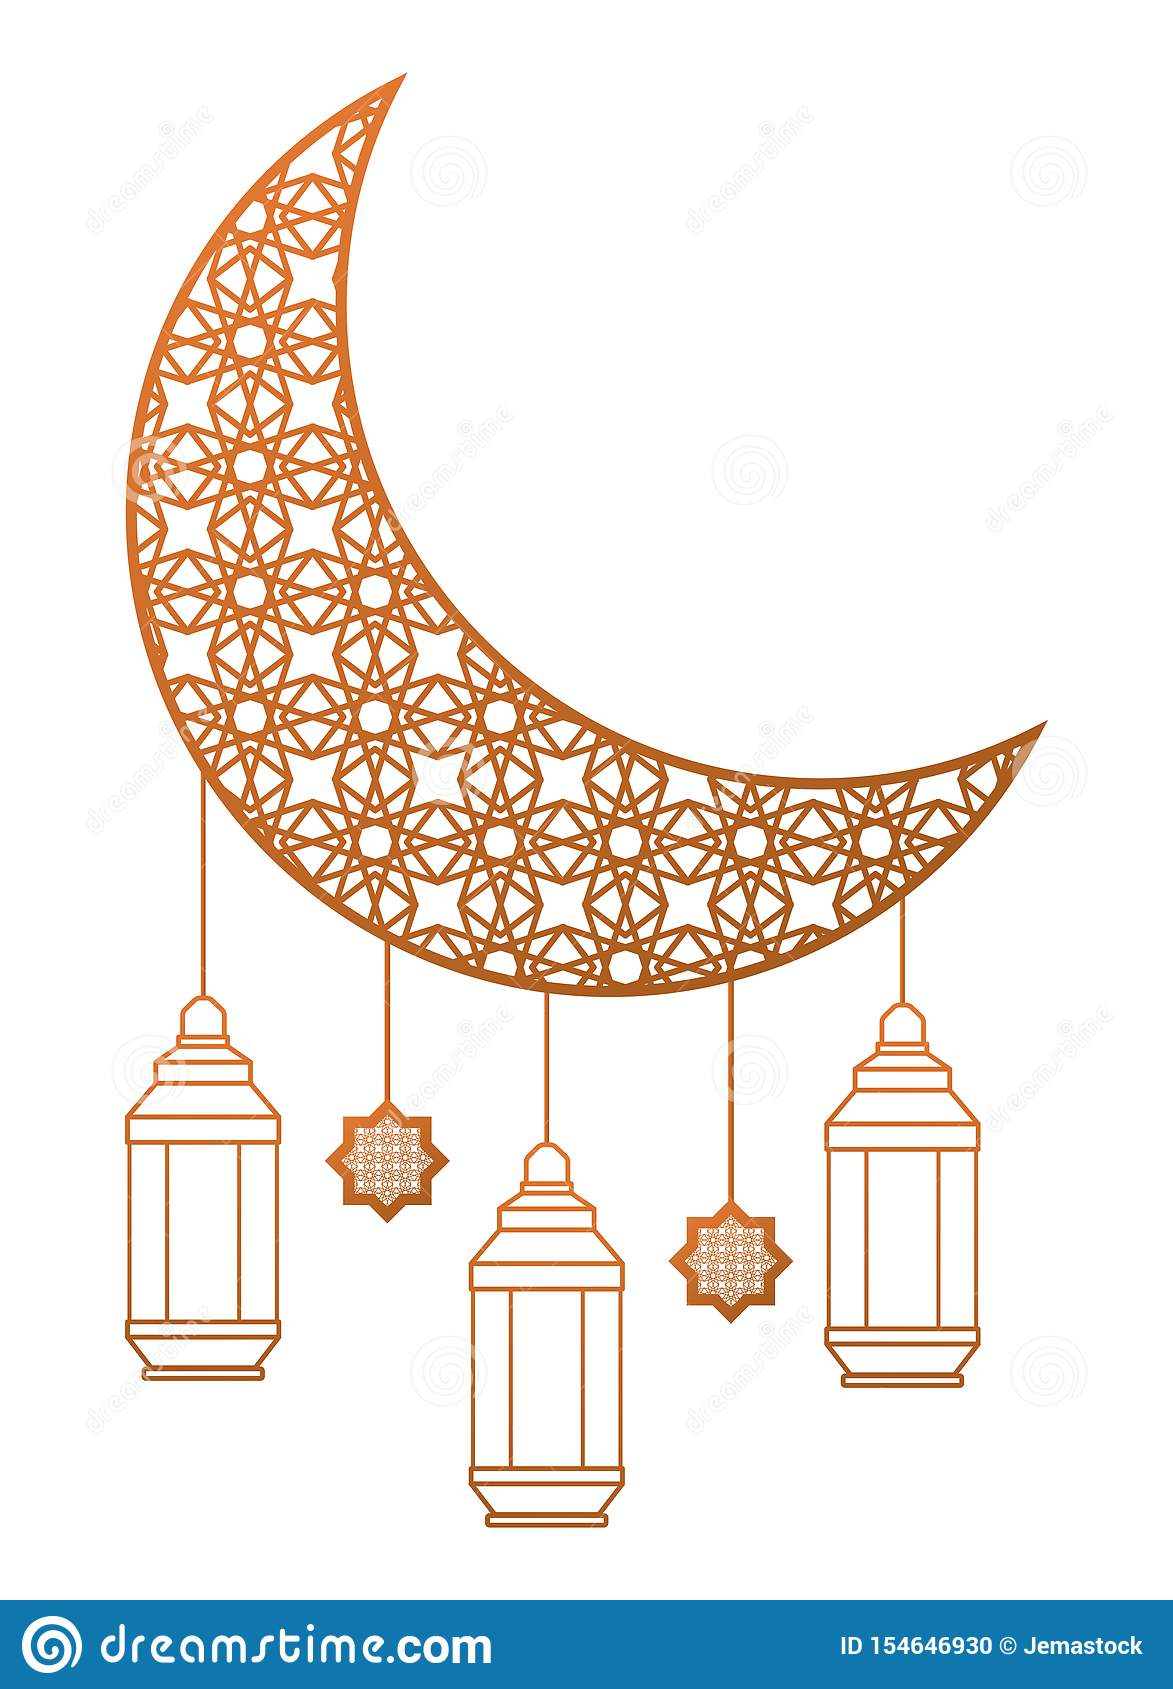 Moon Drawing With Antique Lanterns Hanging Stock Vector Illustration Of Decoration Object 154646930